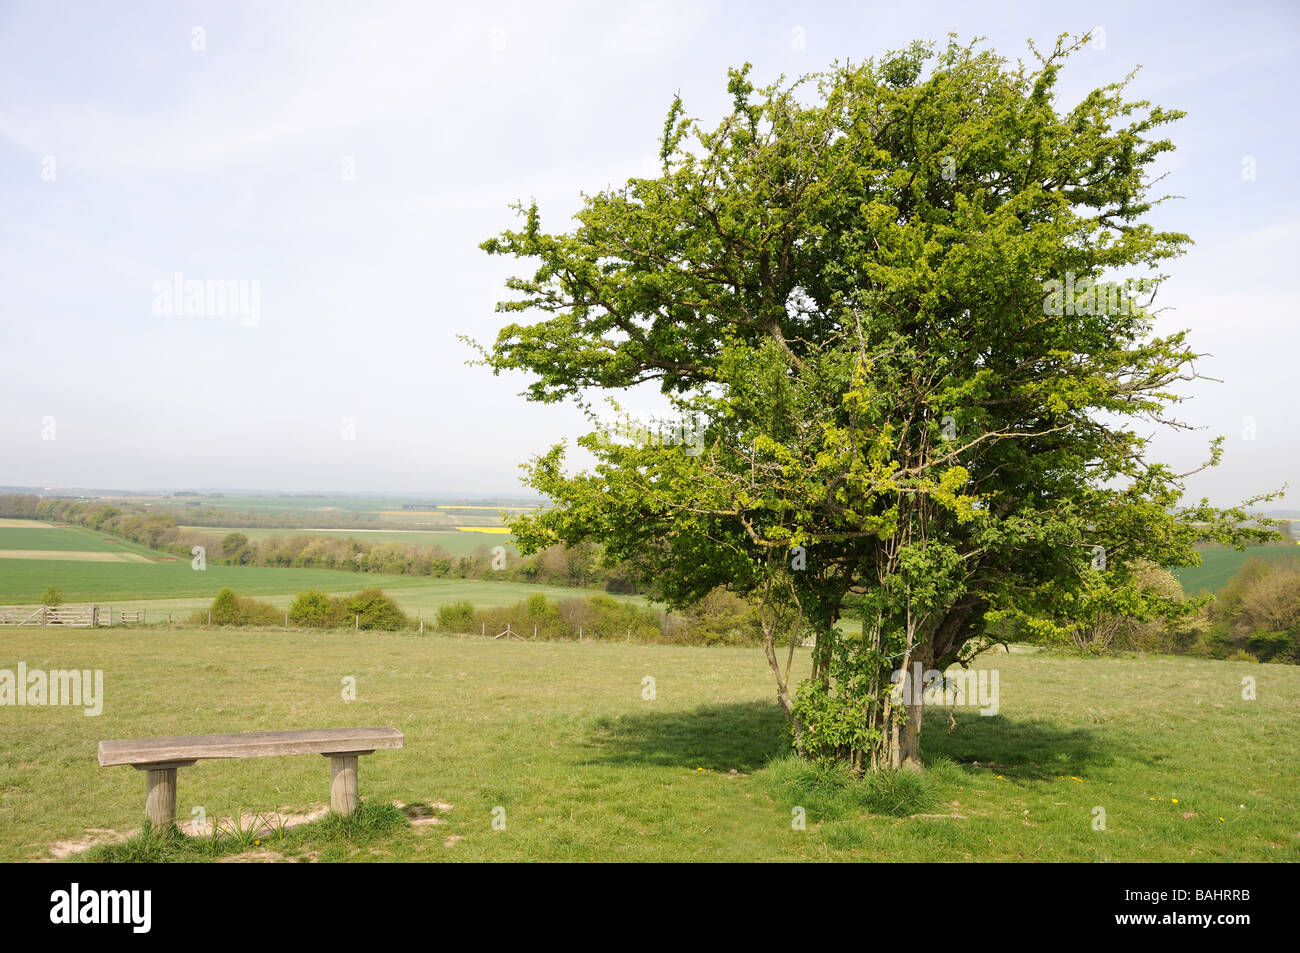 Hawthorn tree bench view - Stock Image